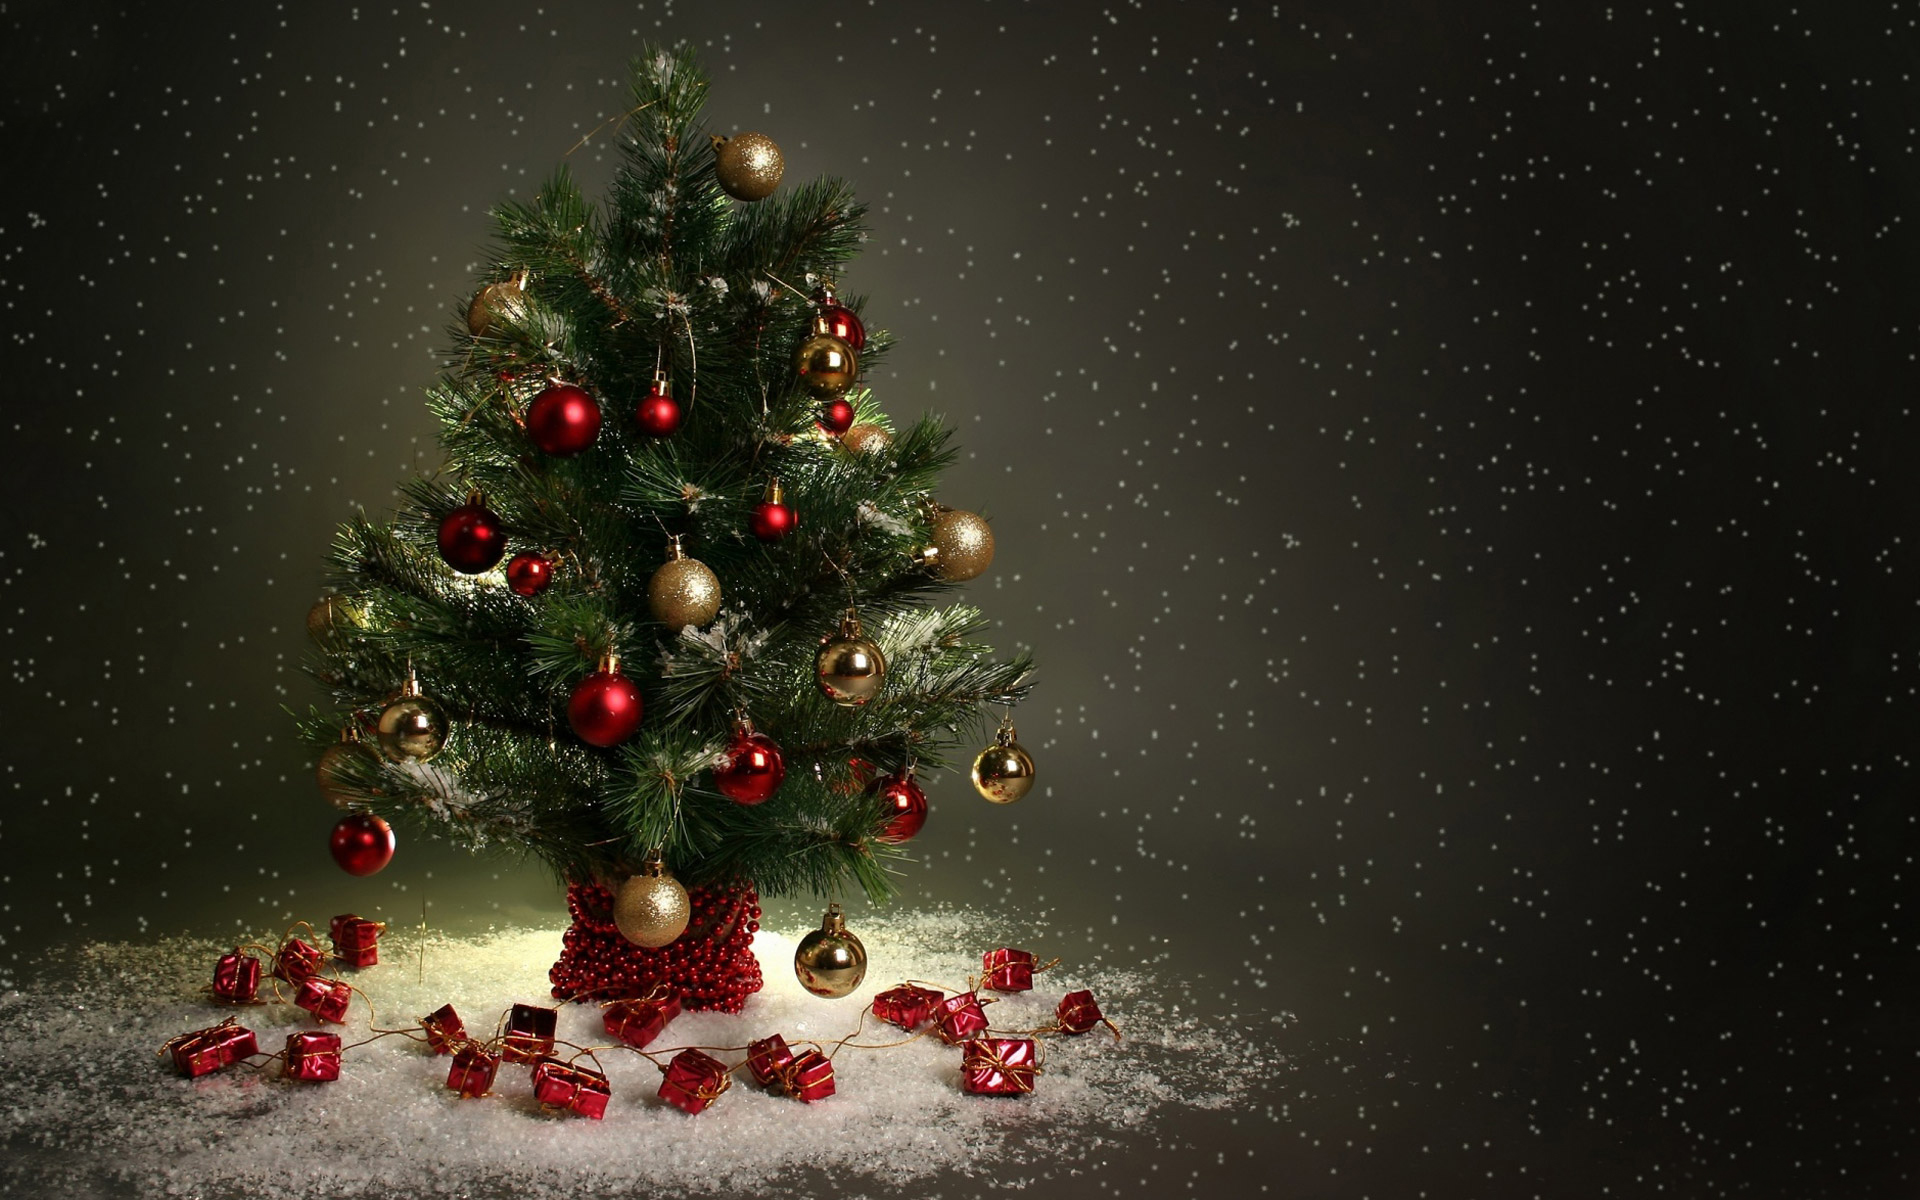 merry christmas tree wallpaper free download